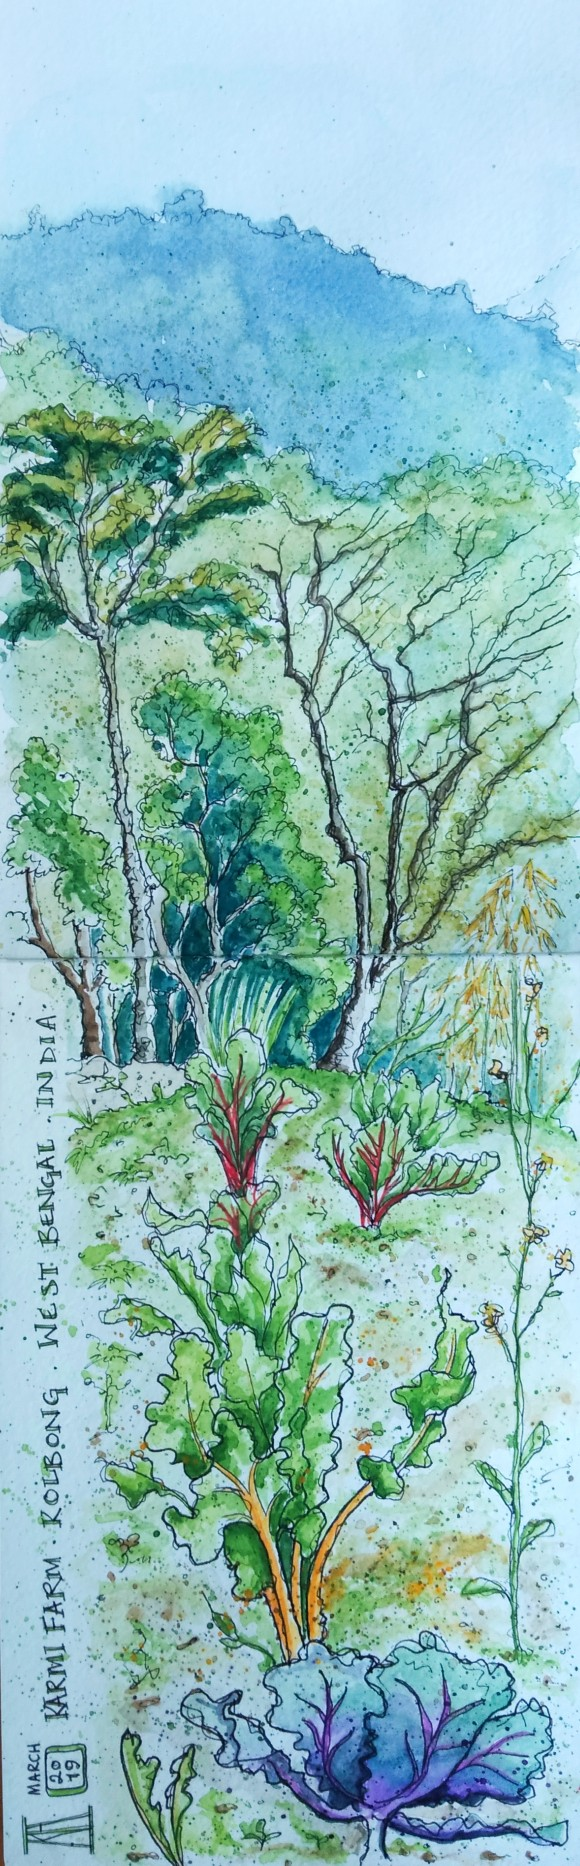 karmi farm, farmstay, west bengal, india, organic farm, travel blog, travel illustration watercolour, watercolor, painting, drawing, sketchbook, travel illustration, vegetables, cabbage patch, himalayan foothills, landscape, trees, mountains, mountain view, kolbong, sikkim, farmstay